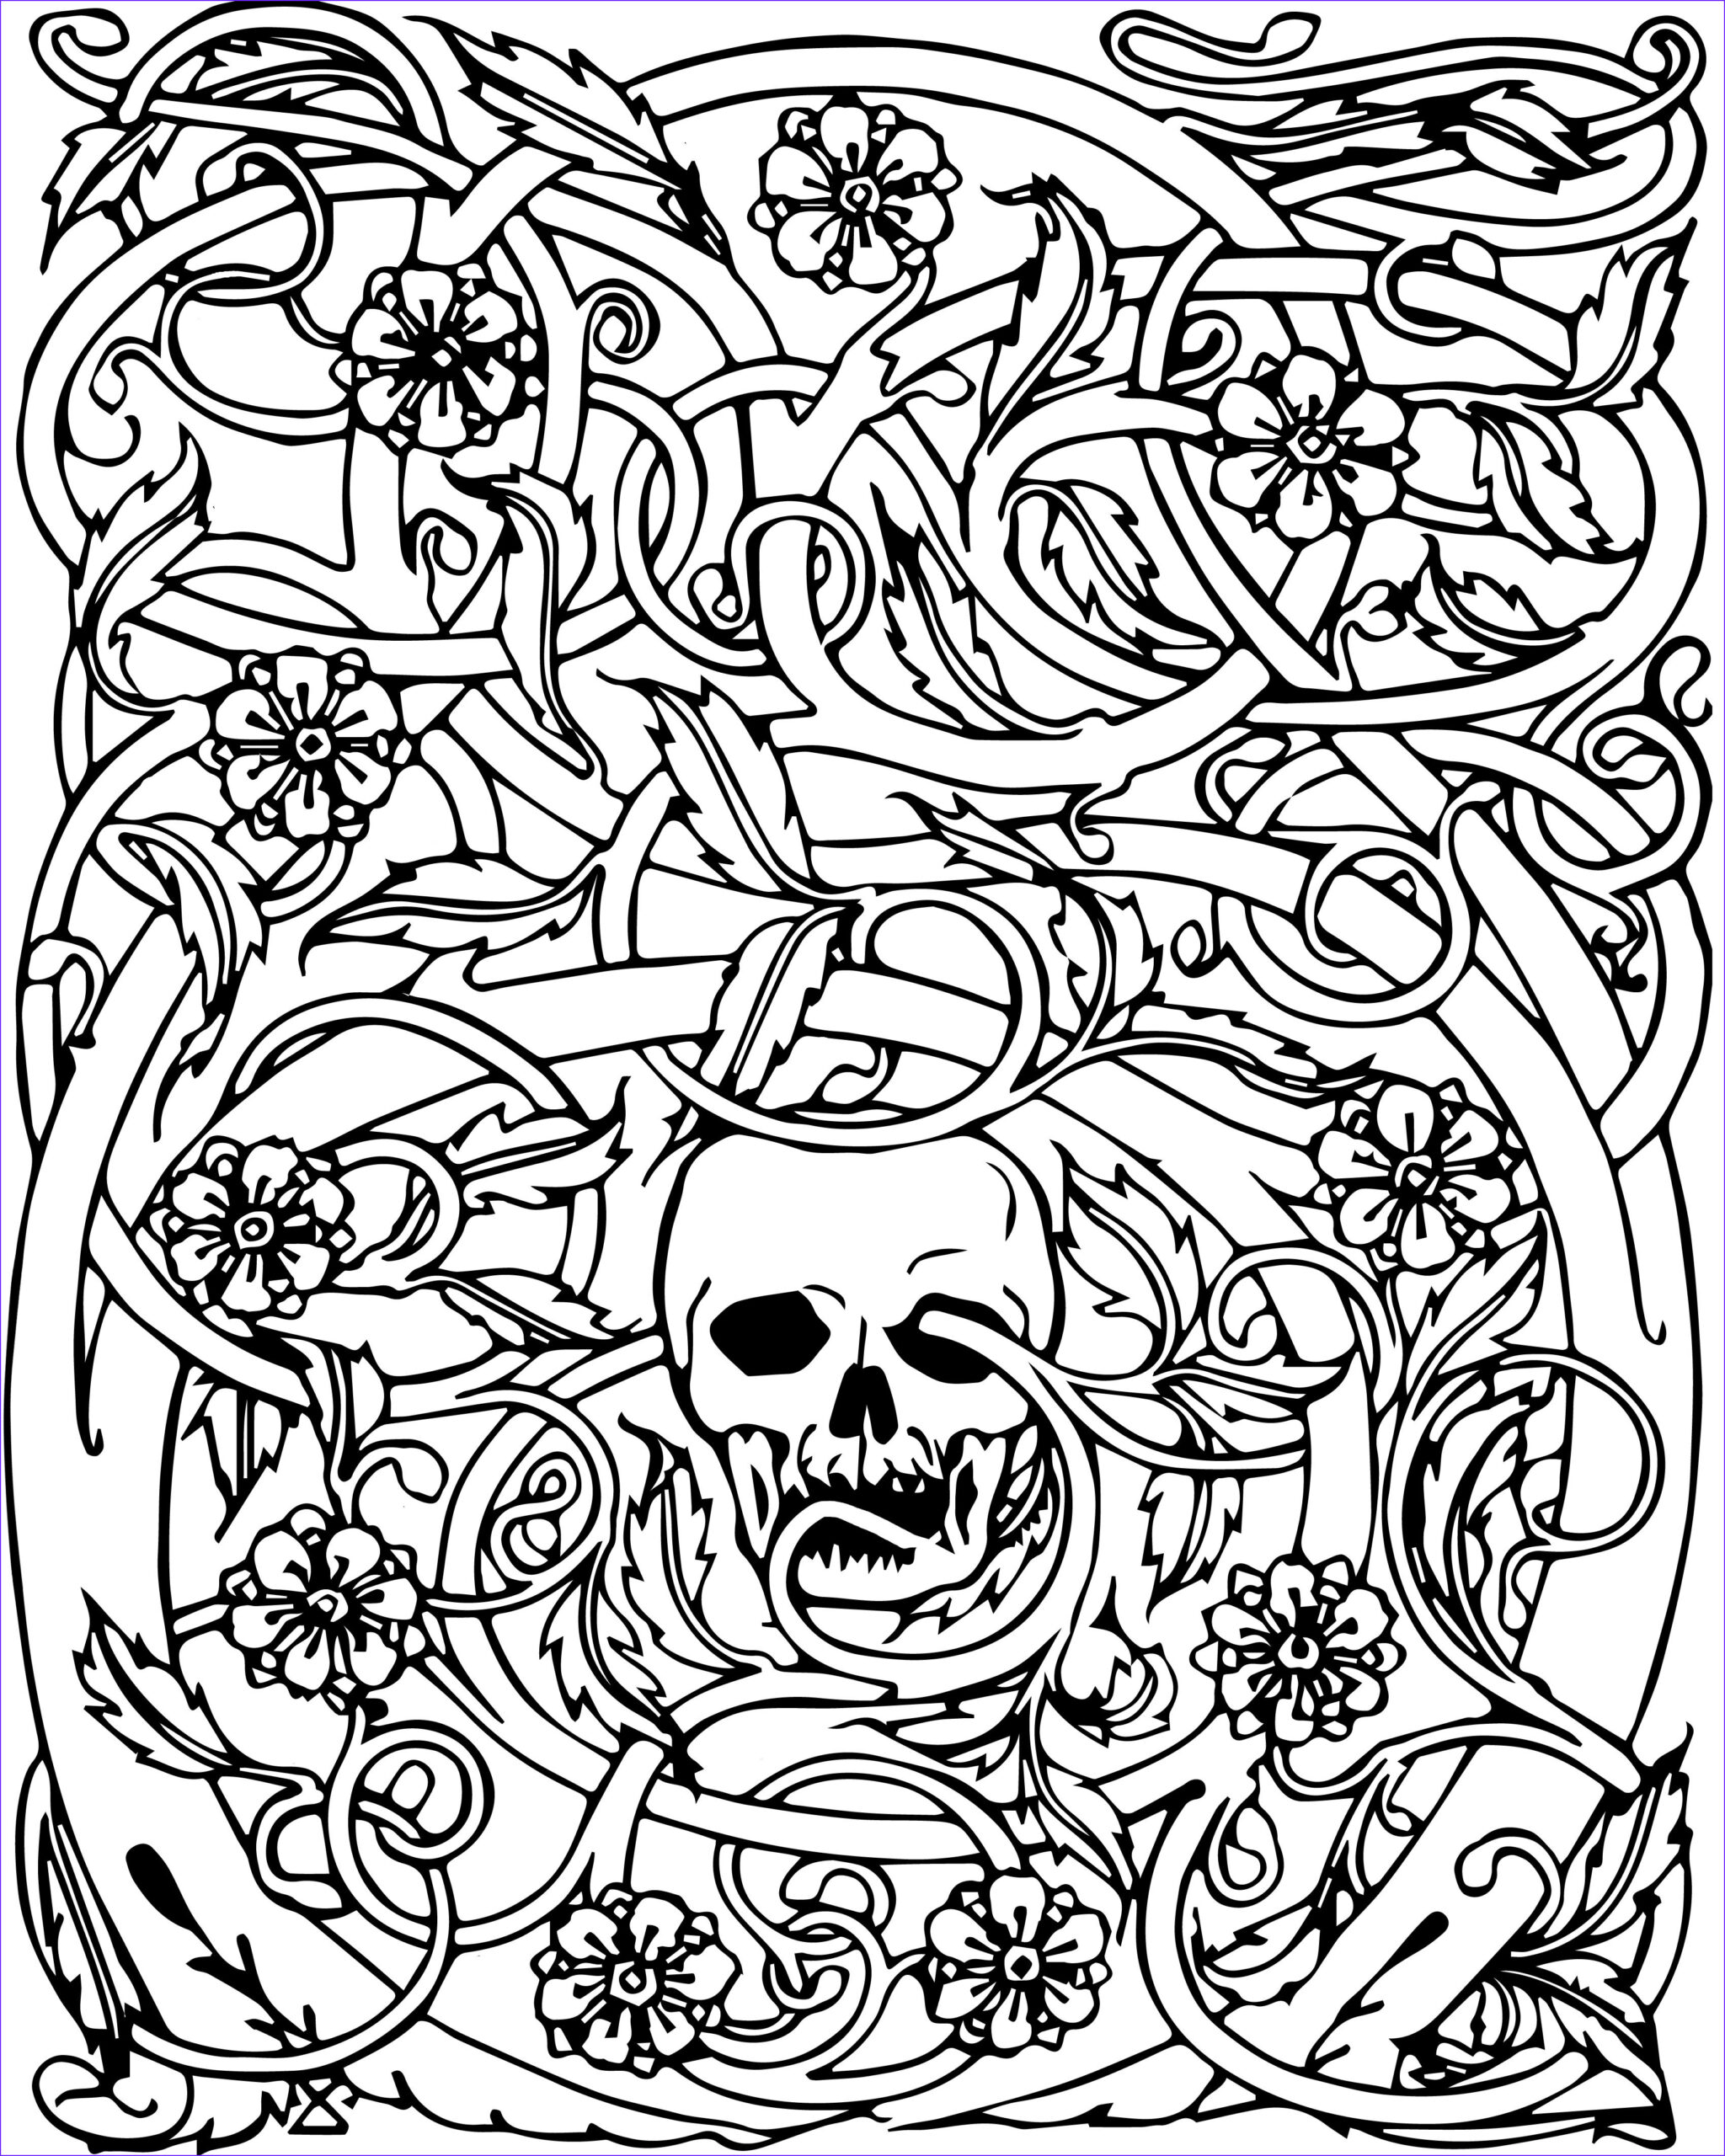 Halloween Coloring Pages Adults Unique Photos Halloween Coloring Pages for Adults